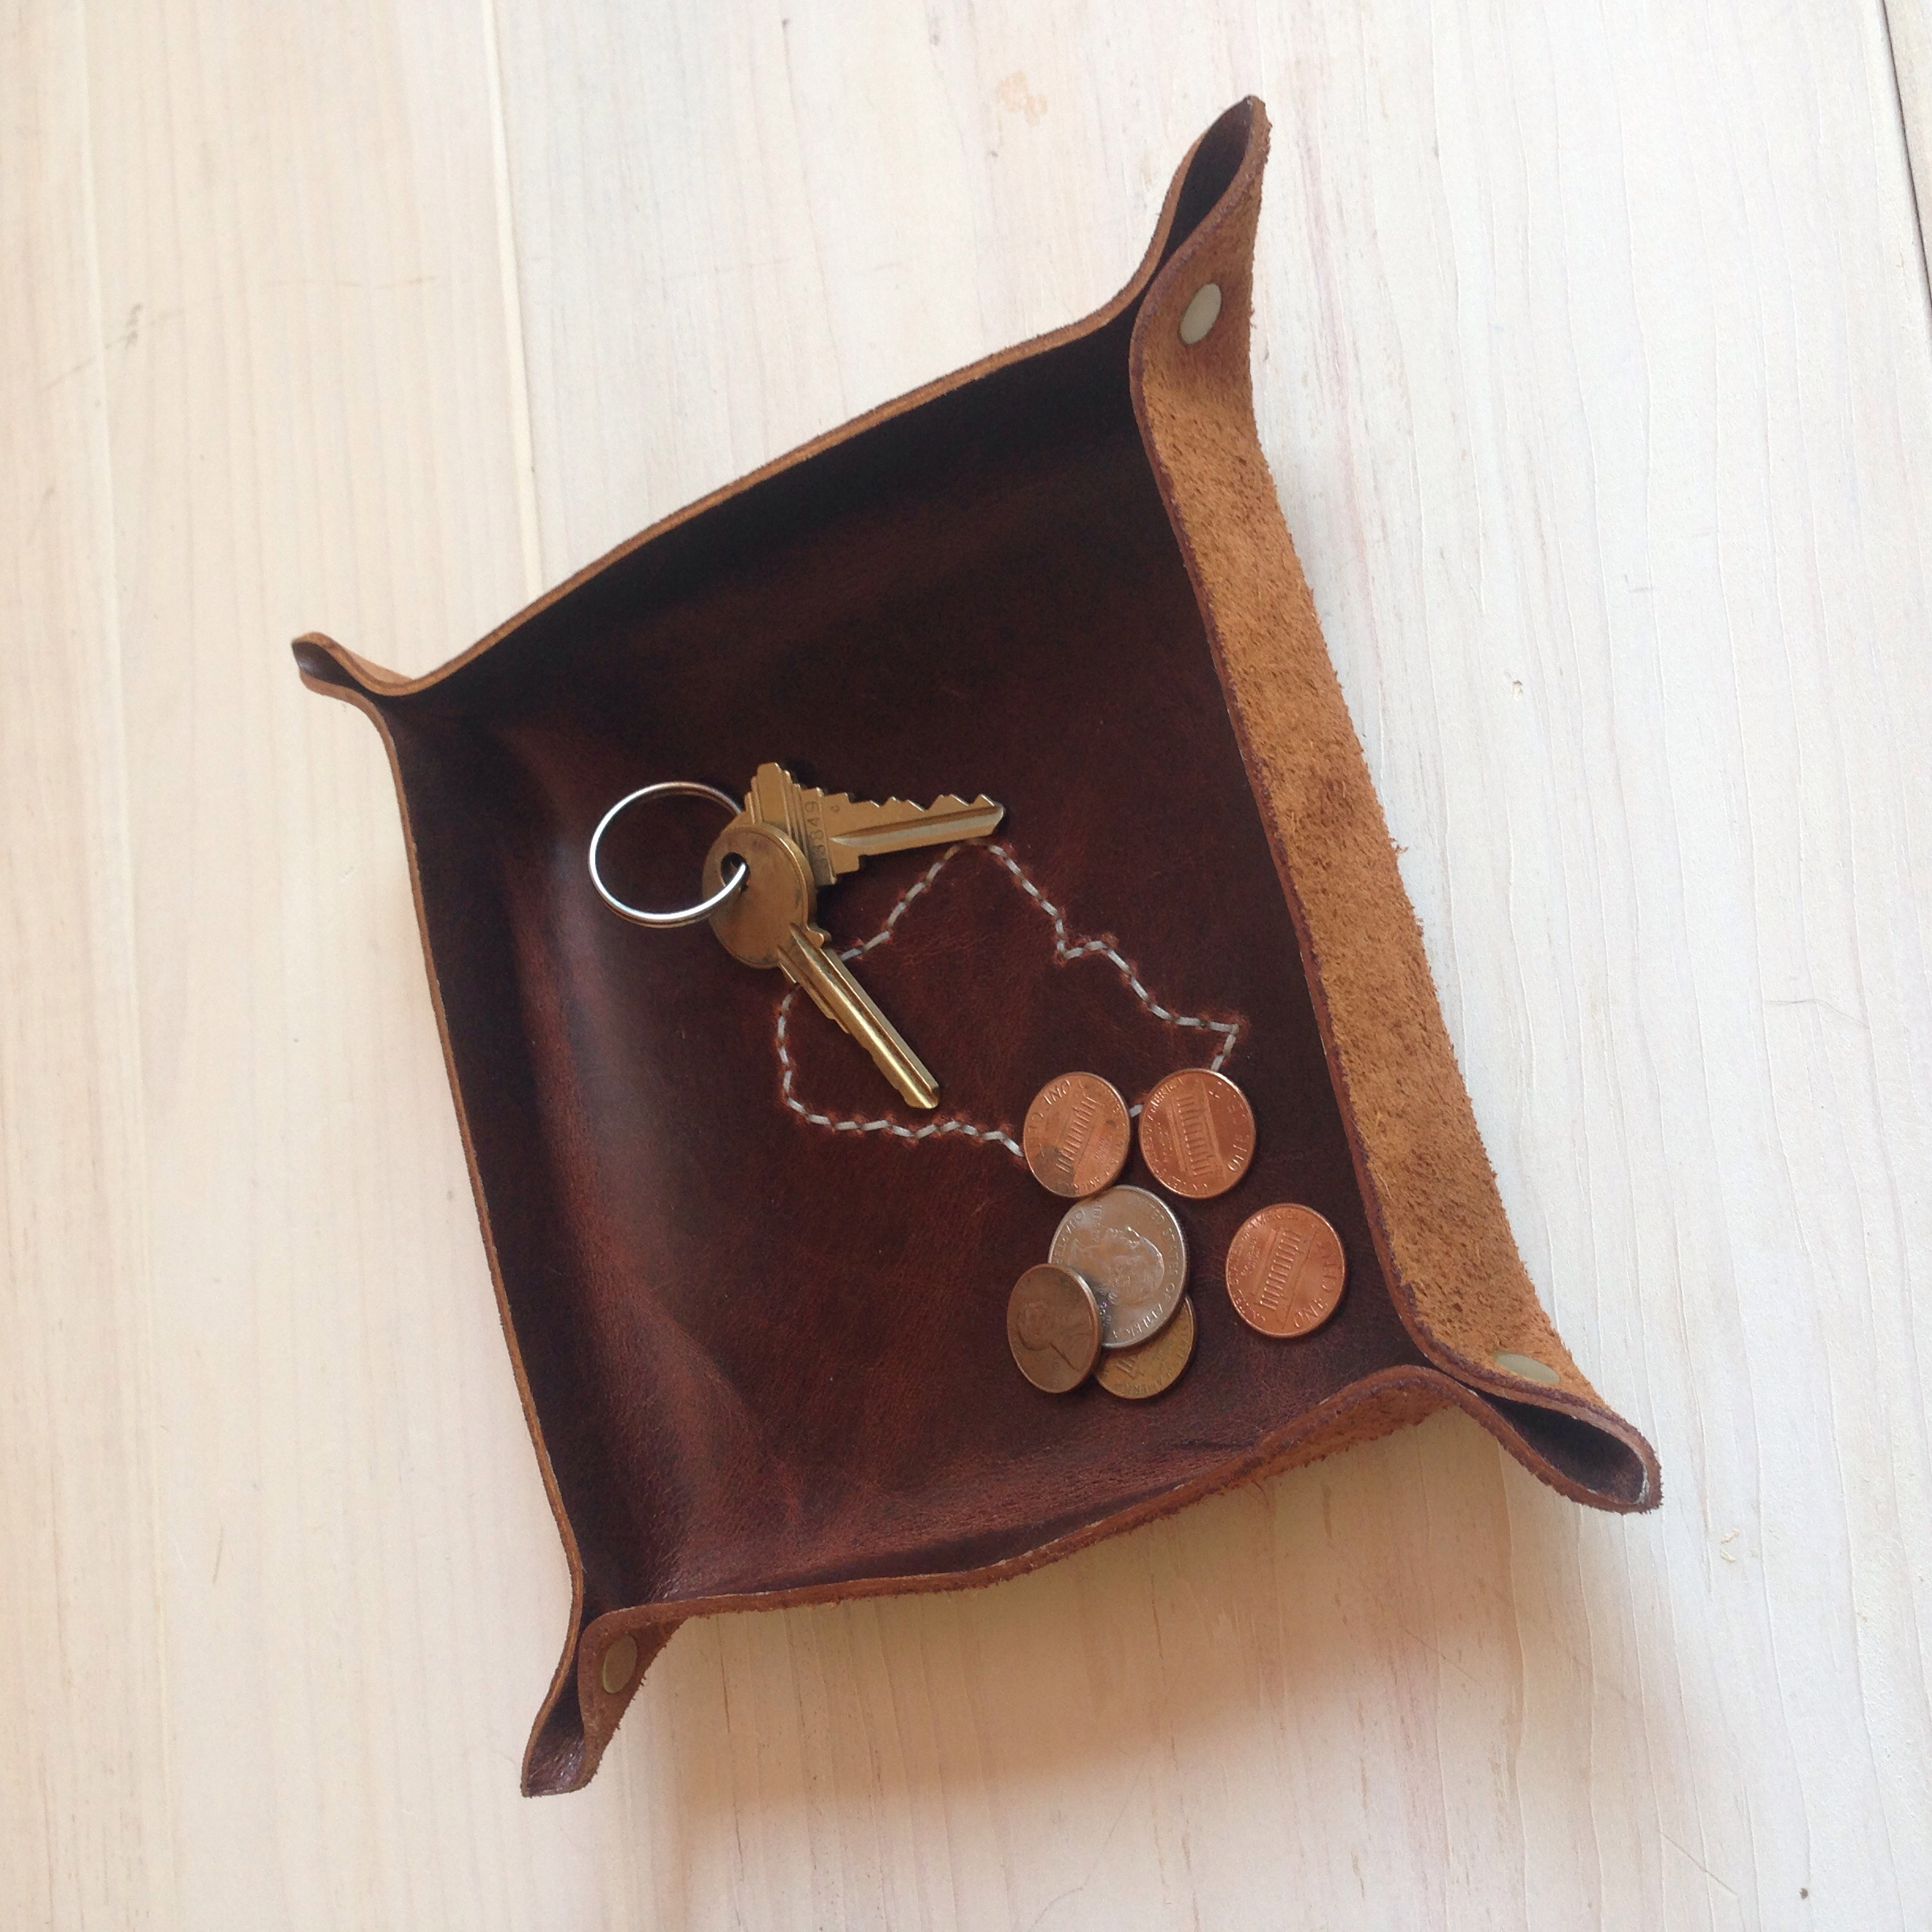 Maine Leather Co.'s catch-all tray